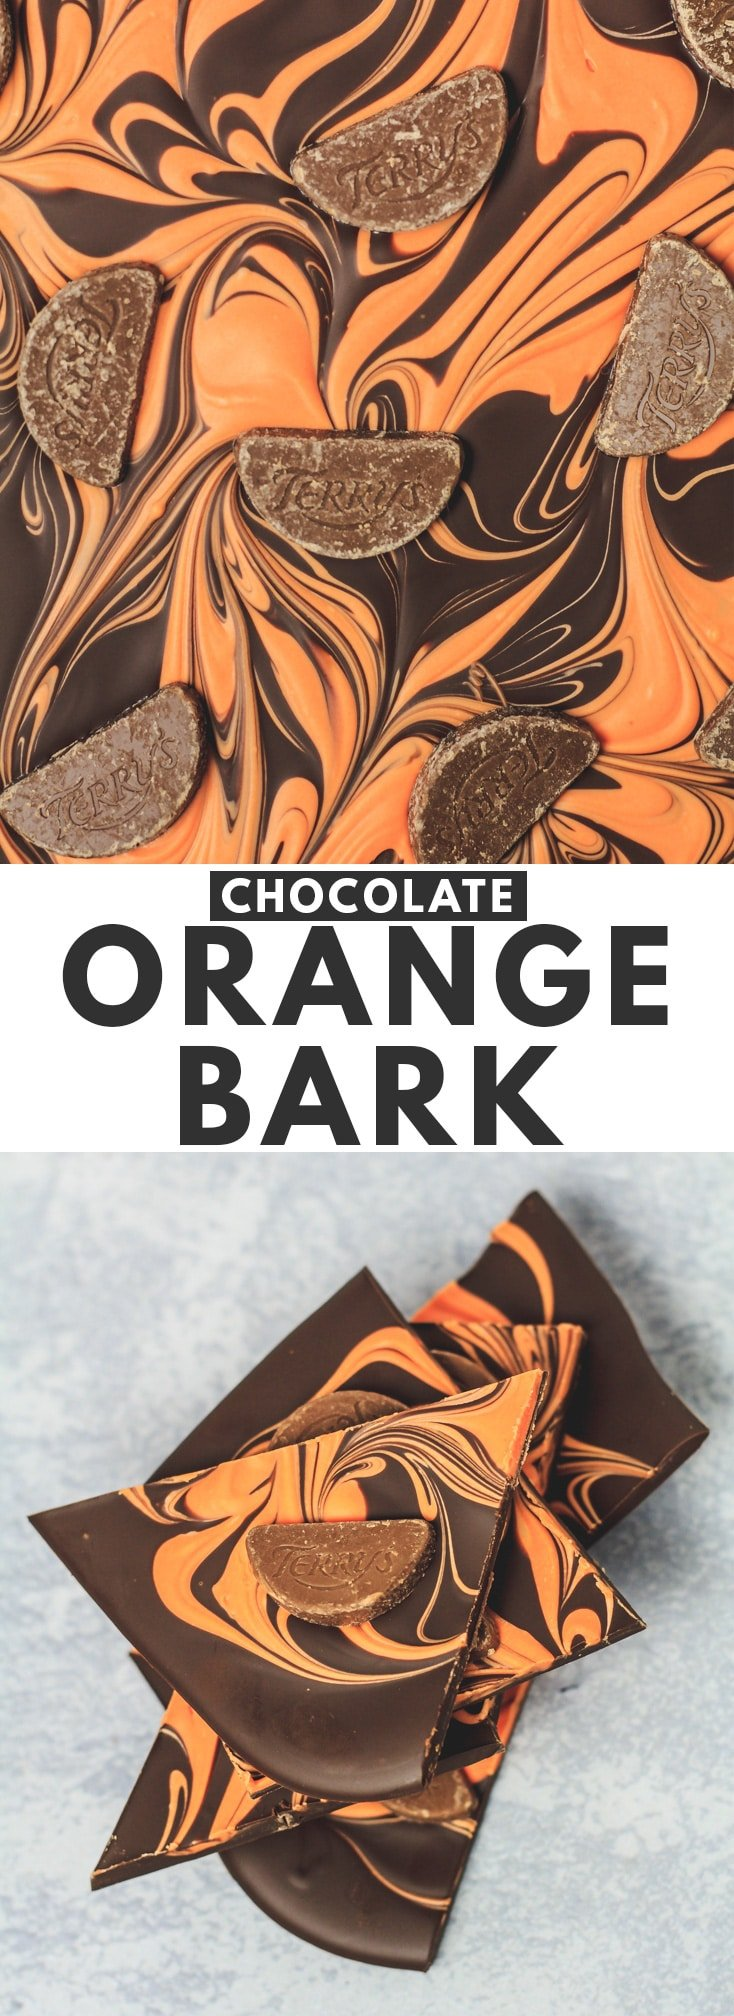 Chocolate Orange Bark - A deliciously creamy orange-infused white chocolate layer swirled into a thick layer of melted dark chocolate. The perfect treat for sharing and gift-giving! #chocolate #orange #chocolatebark #recipe